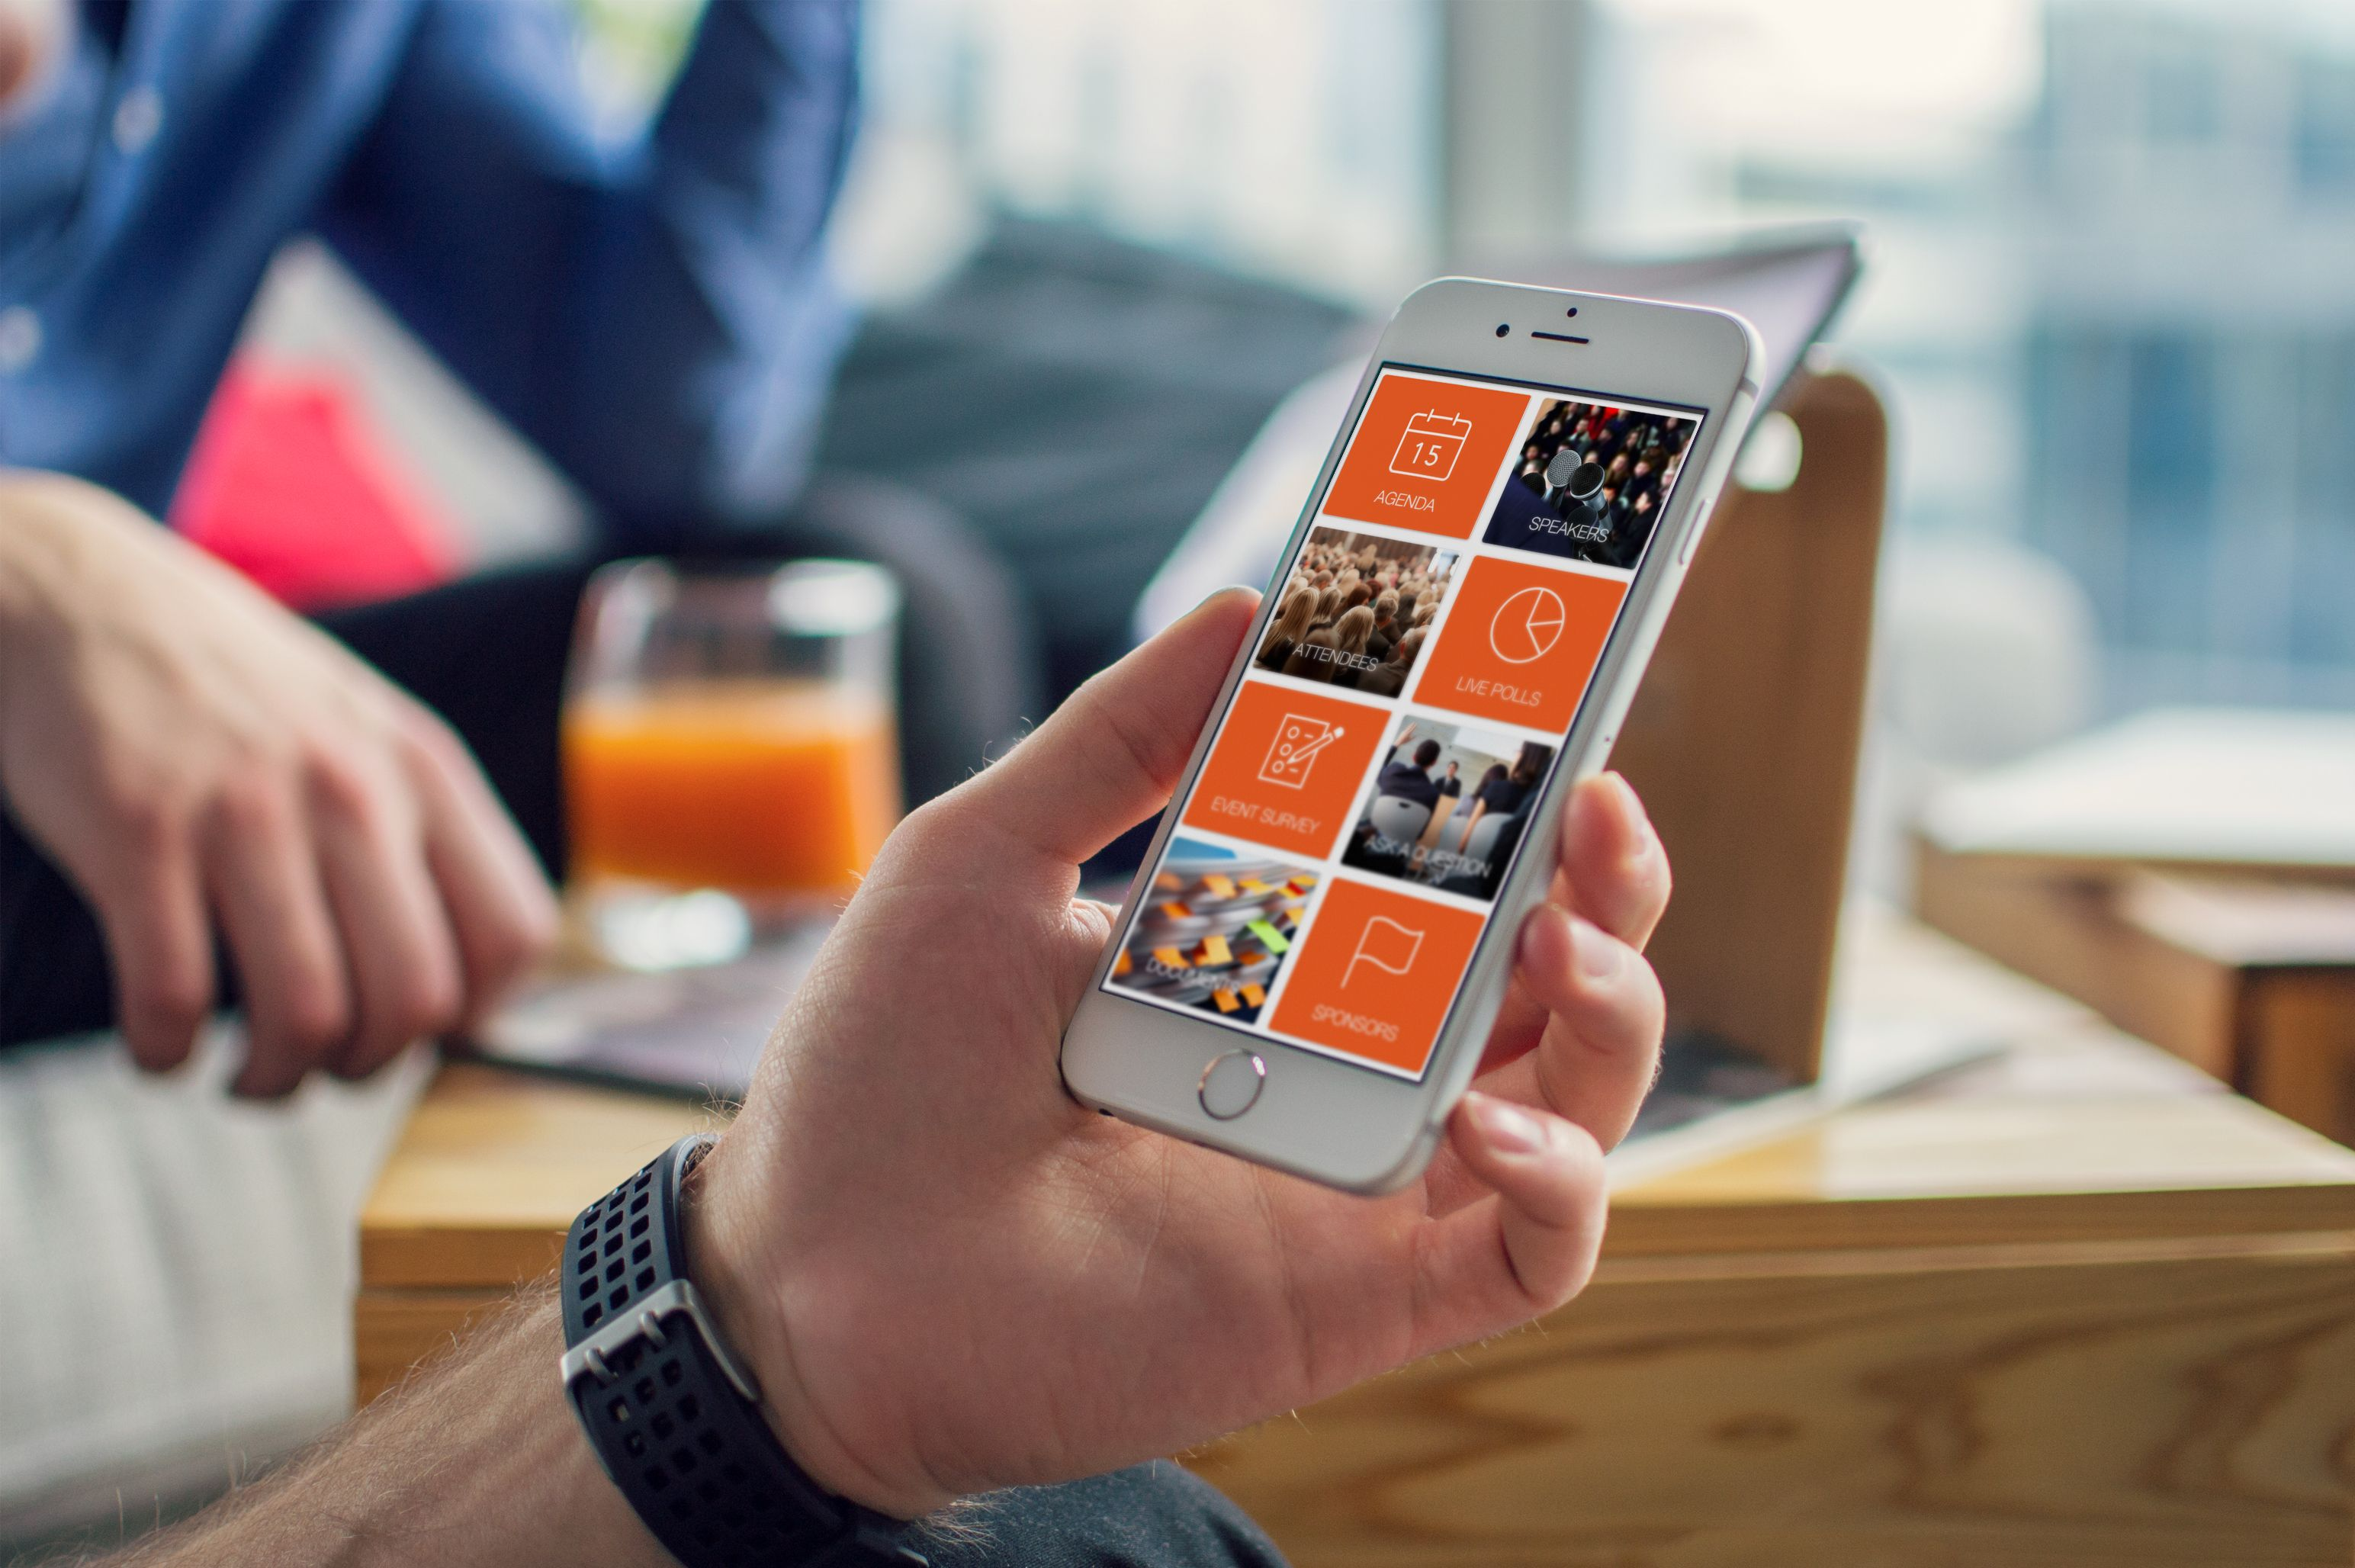 Event Planning App How To Develop Event Management Apps Mockup Free Psd Iphone Mockup Psd